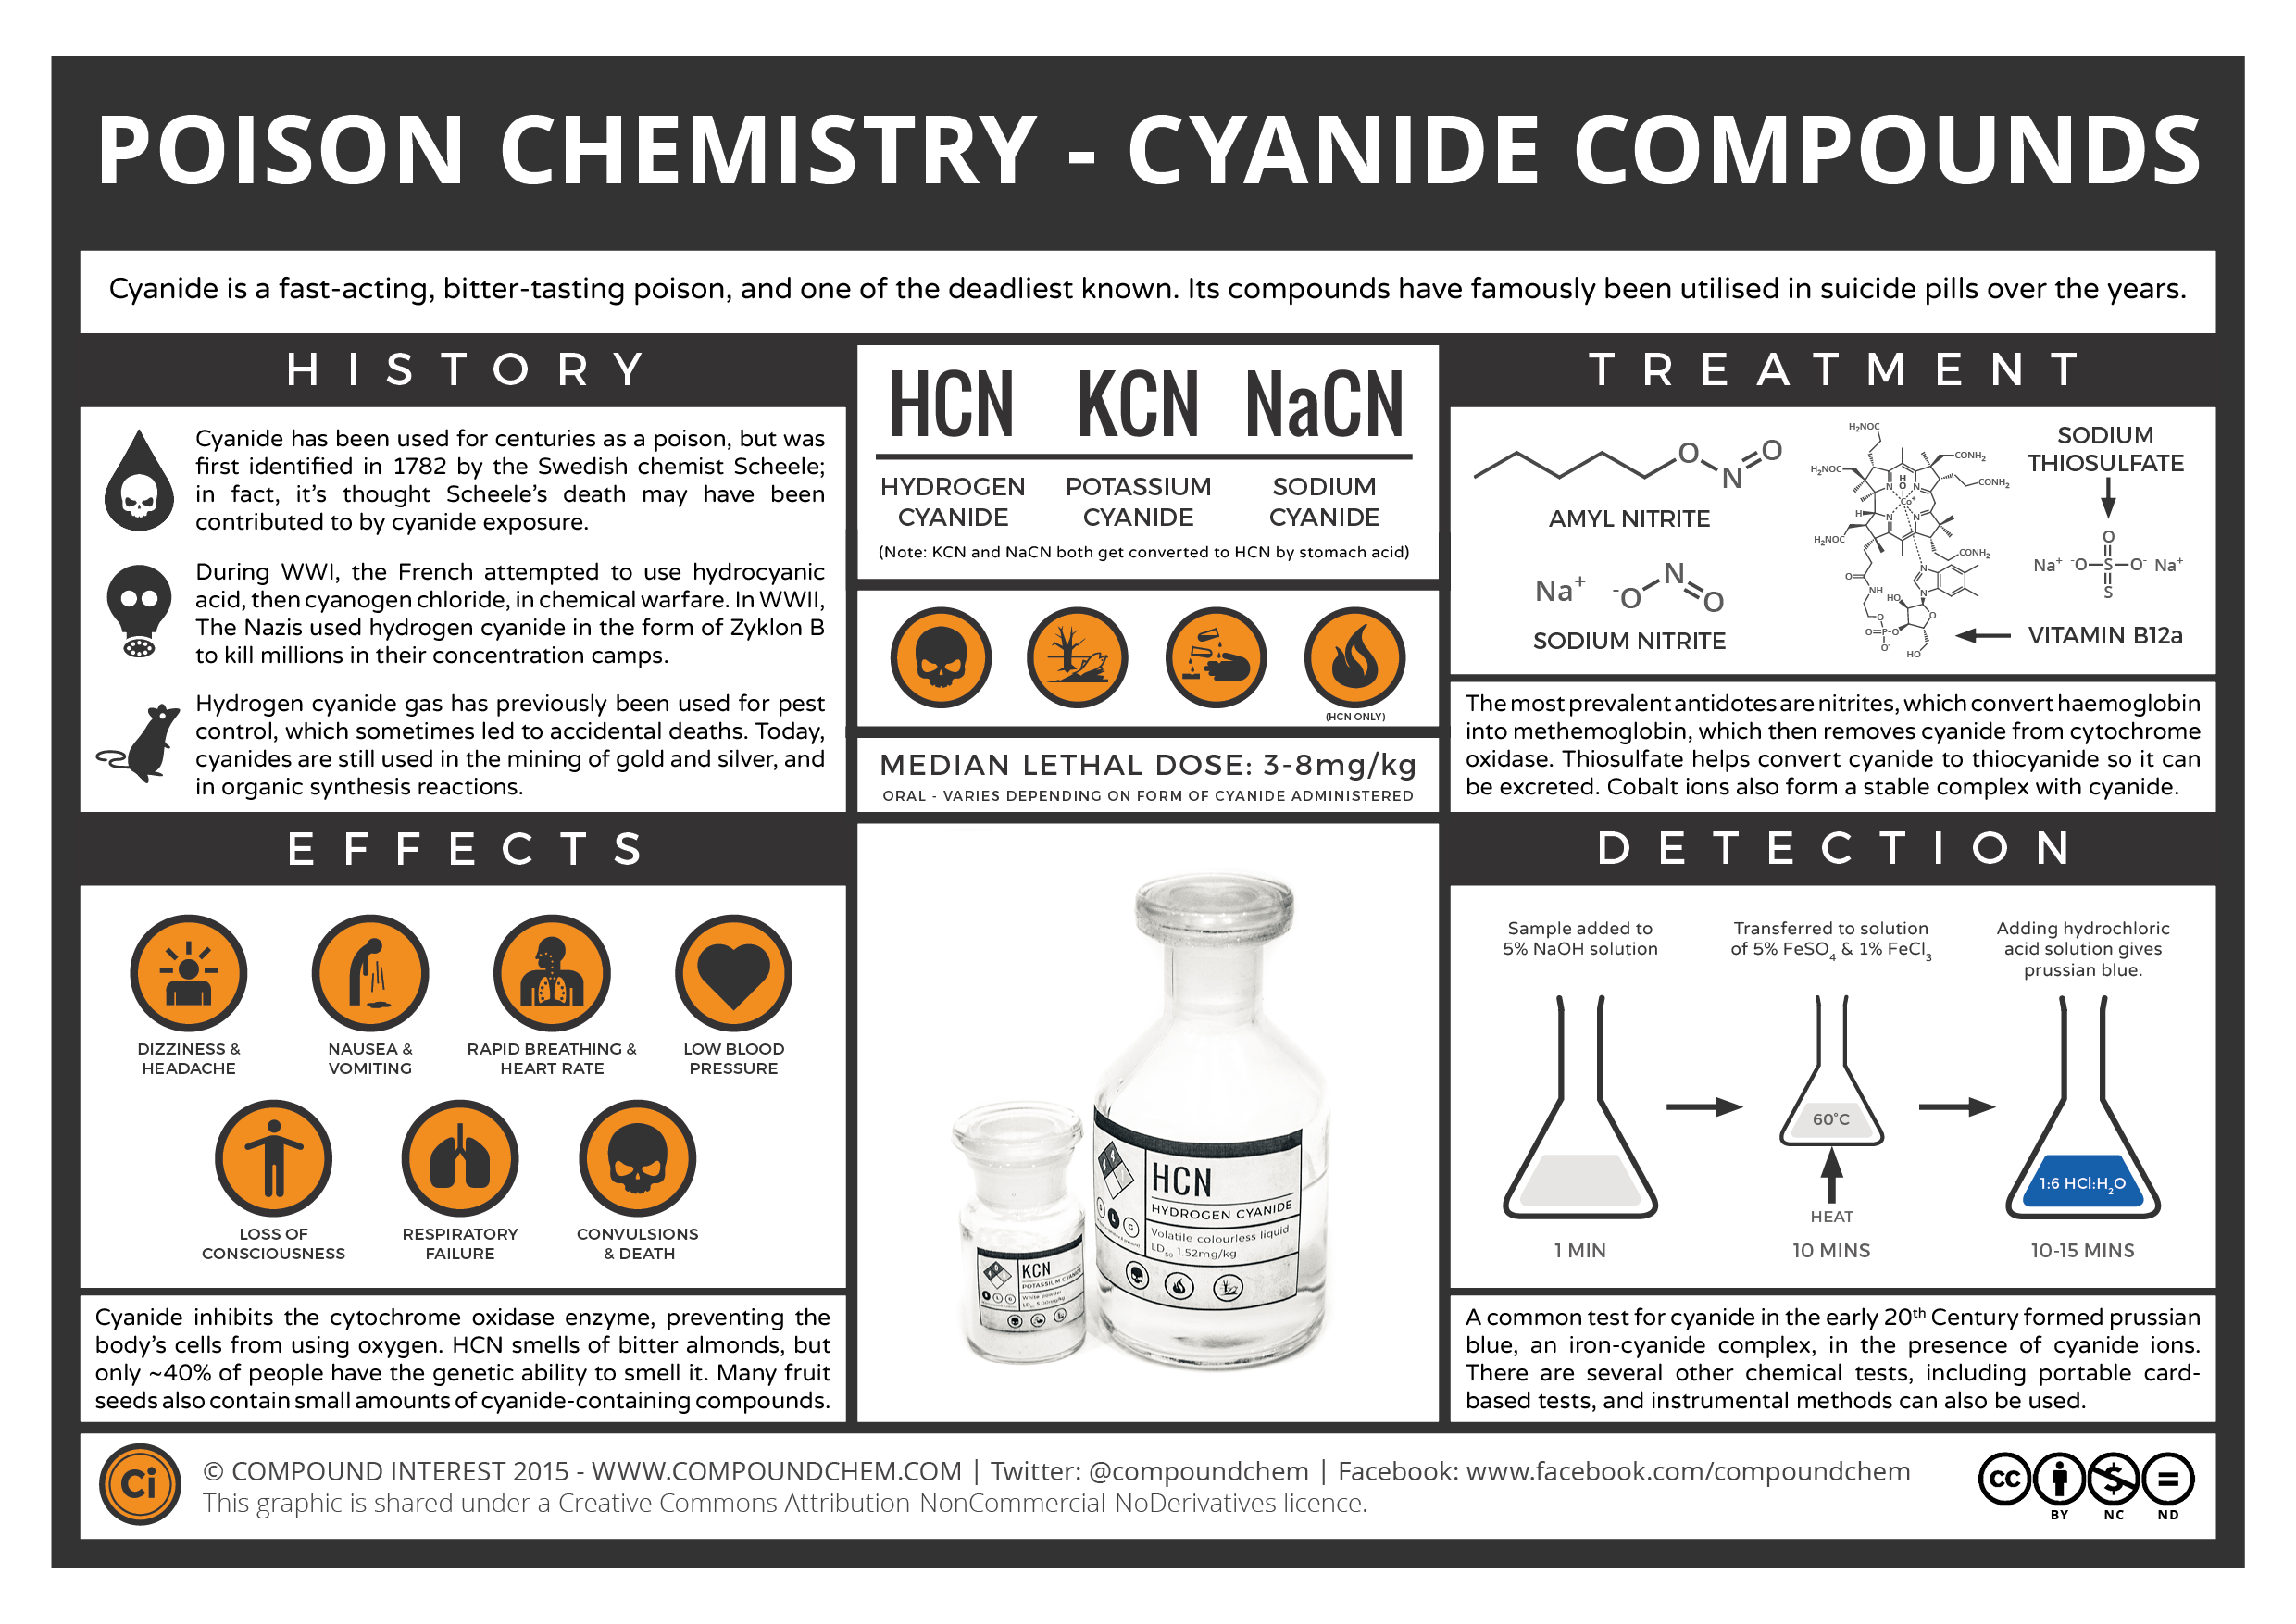 What did people of the middle ages know about cyanide?